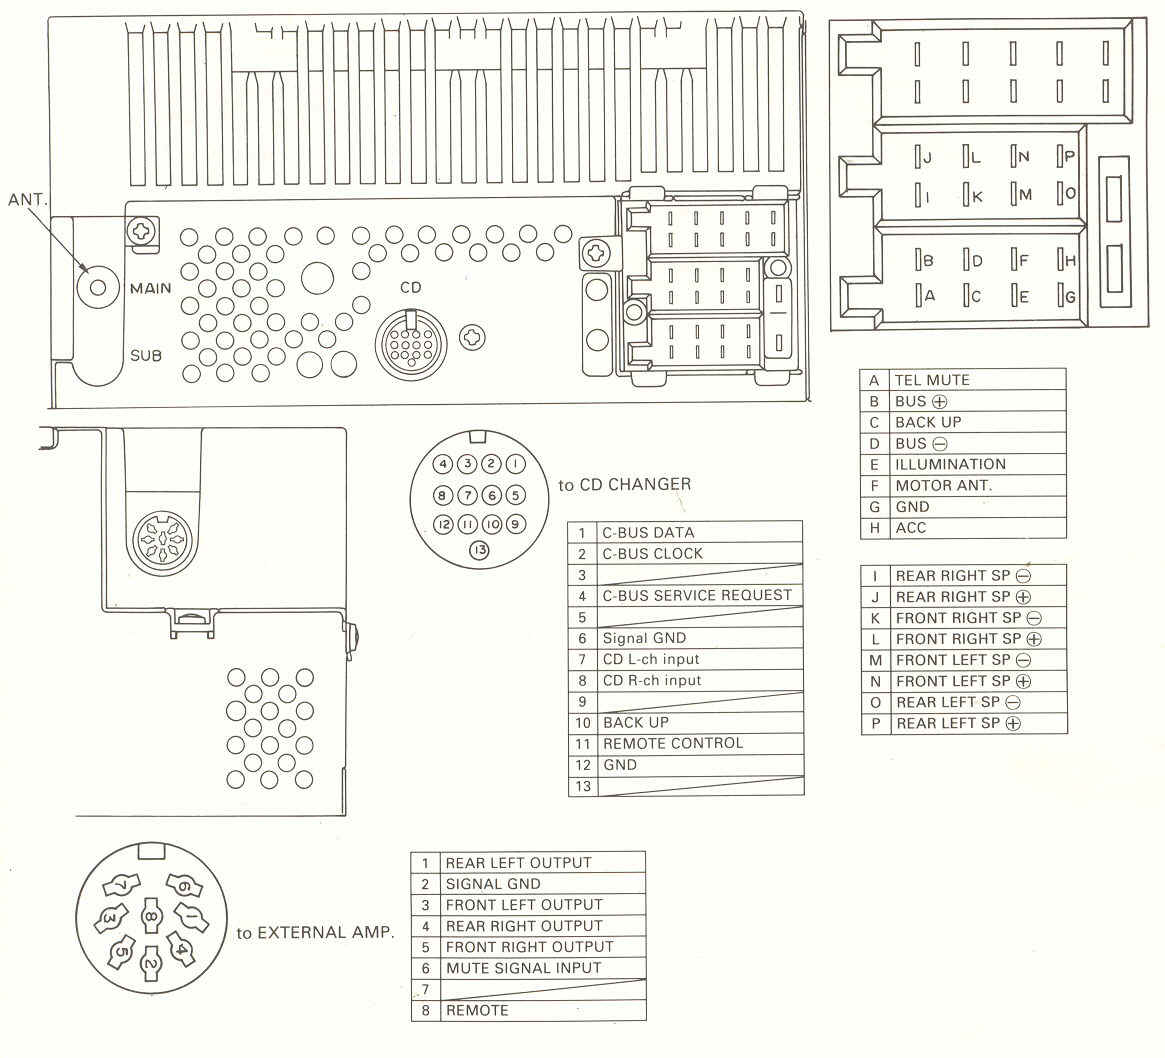 2003 Saab 9 3 Radio Wiring Diagram Schematics Diagrams Engine Trusted U2022 Rh Soulmatestyle Co